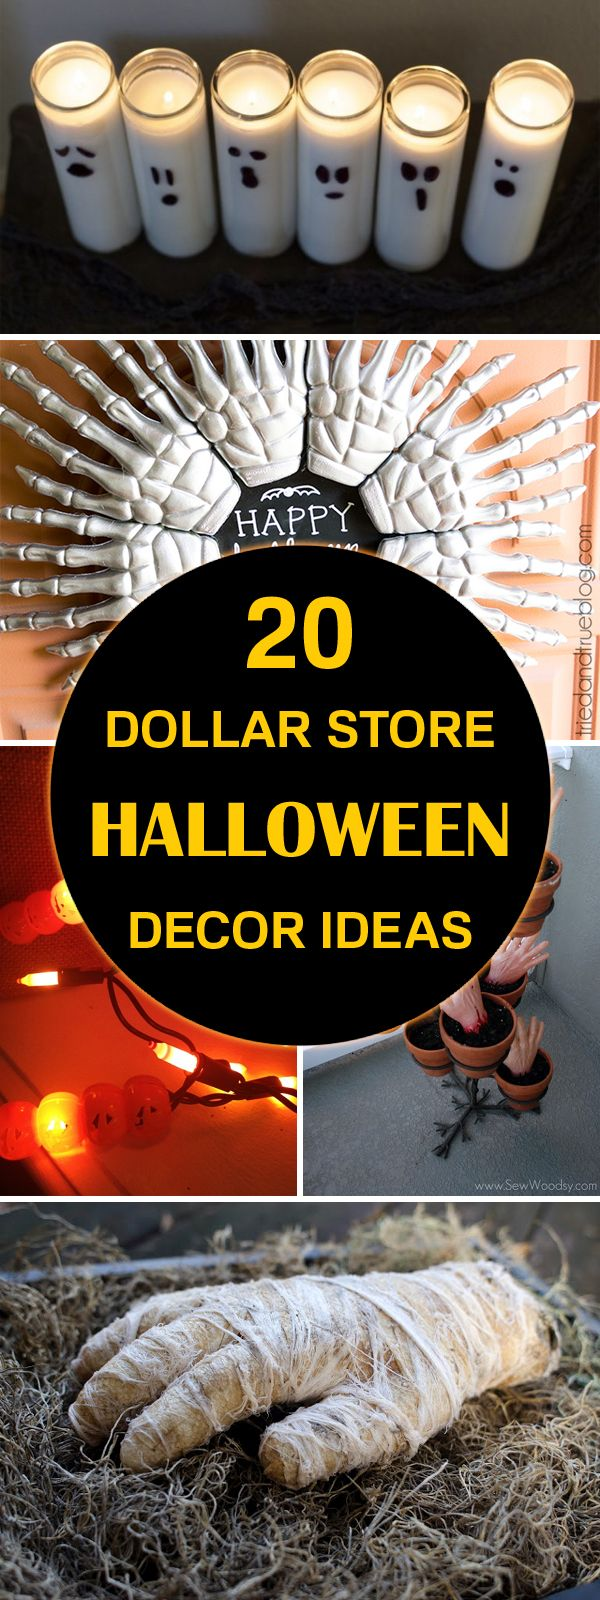 20 dollar store halloween decor ideas - Cheap Easy Halloween Decorating Ideas